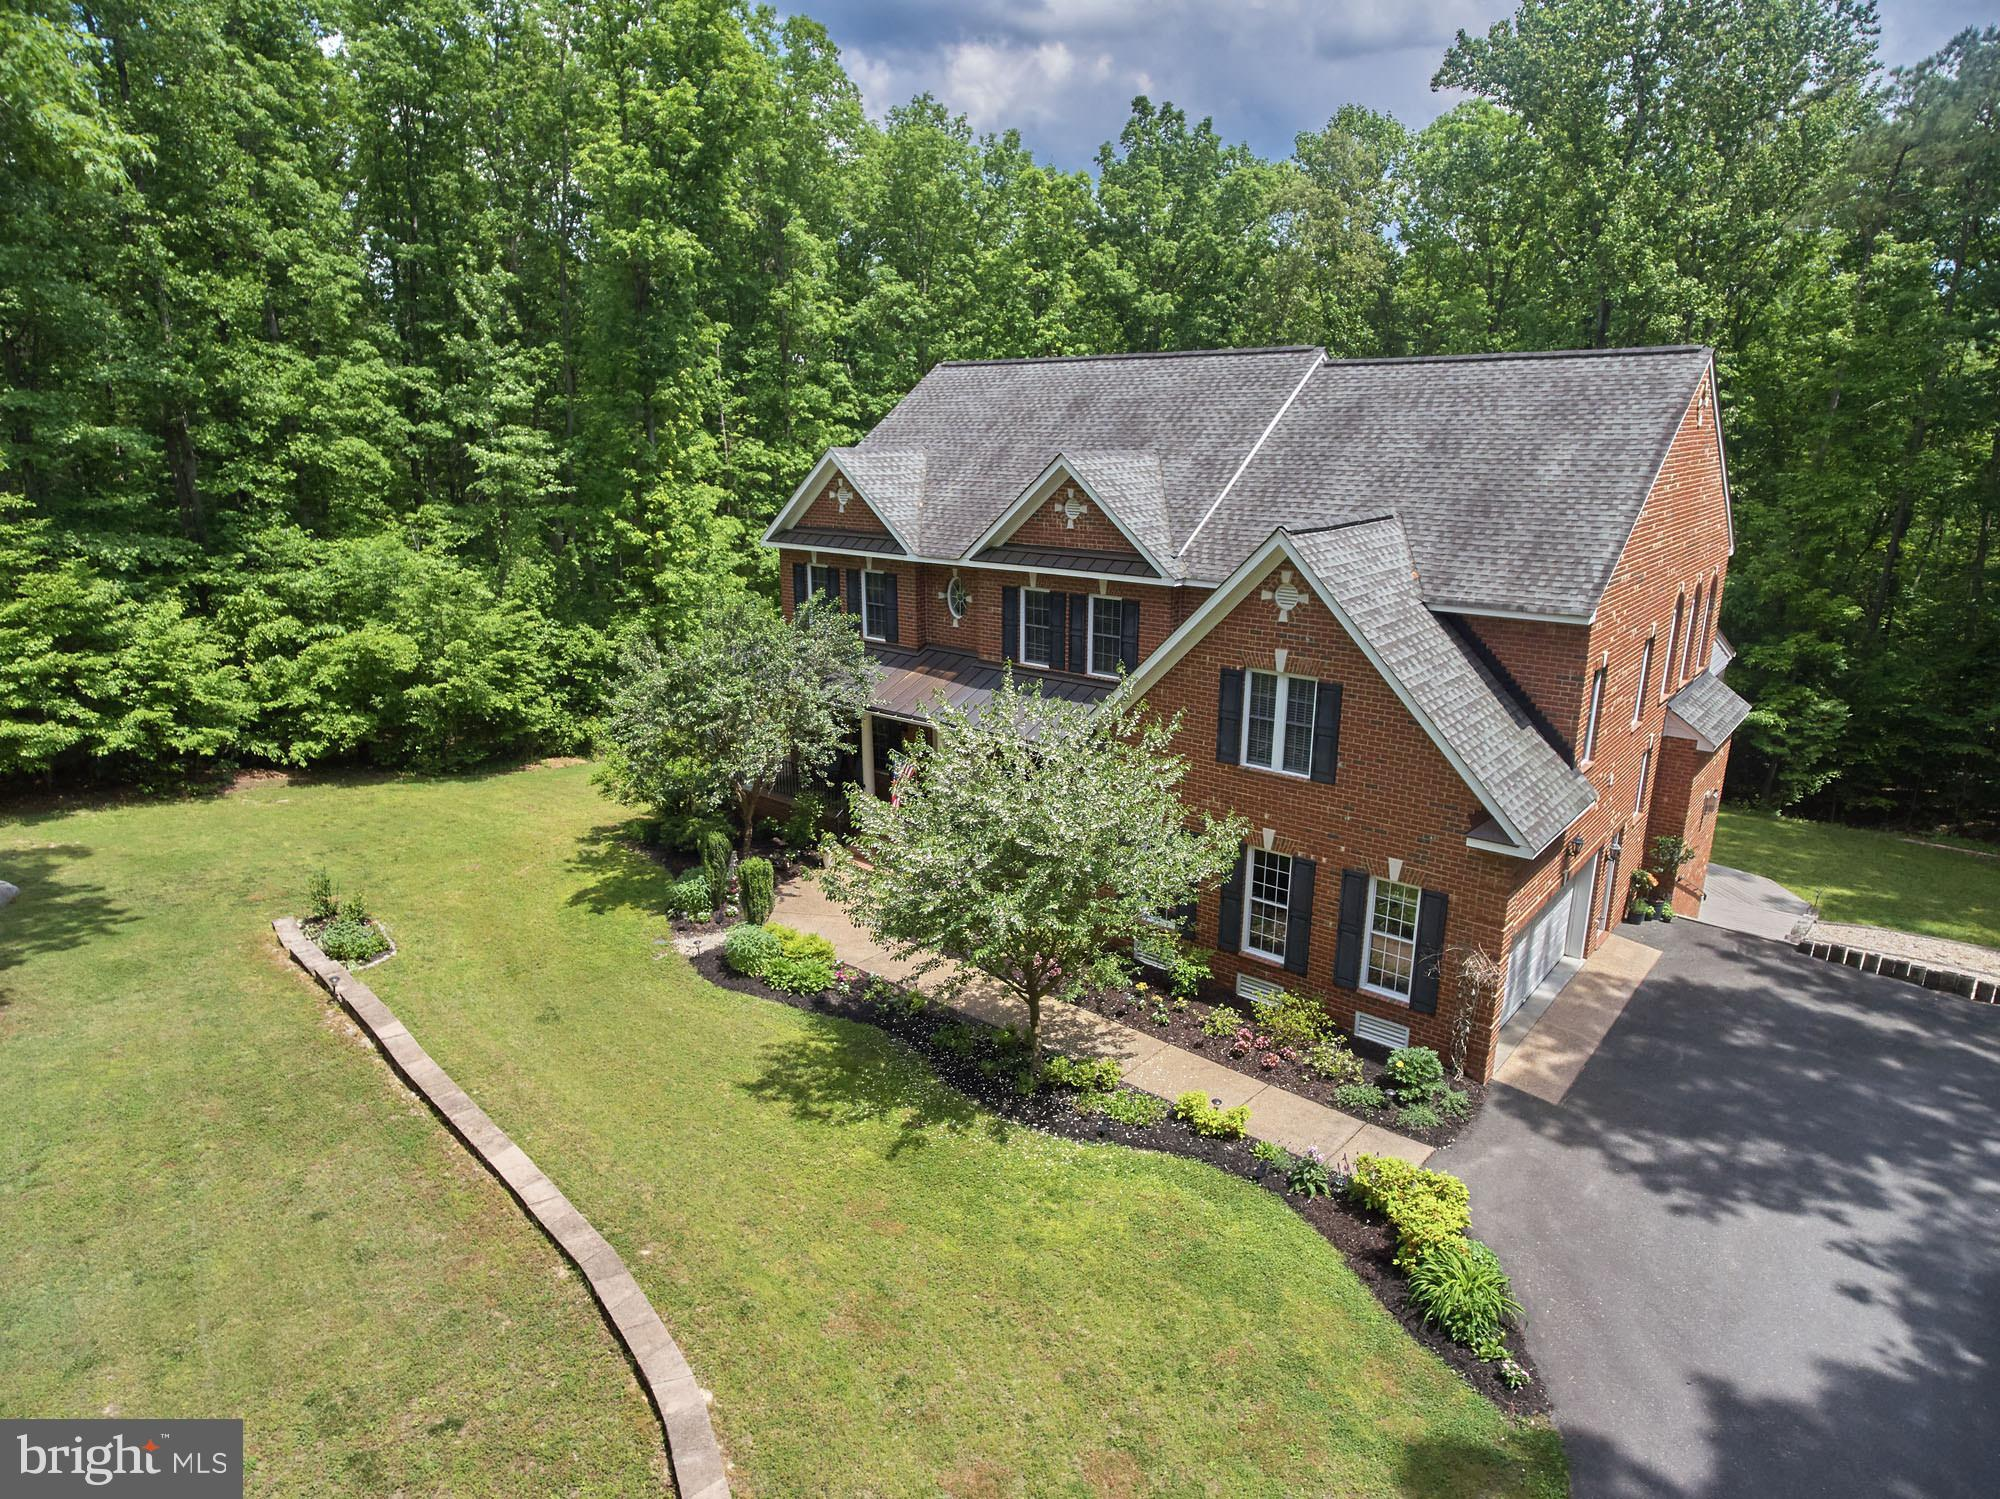 14368 HORSESHOE FORD ROAD, ASHLAND, VA 23005